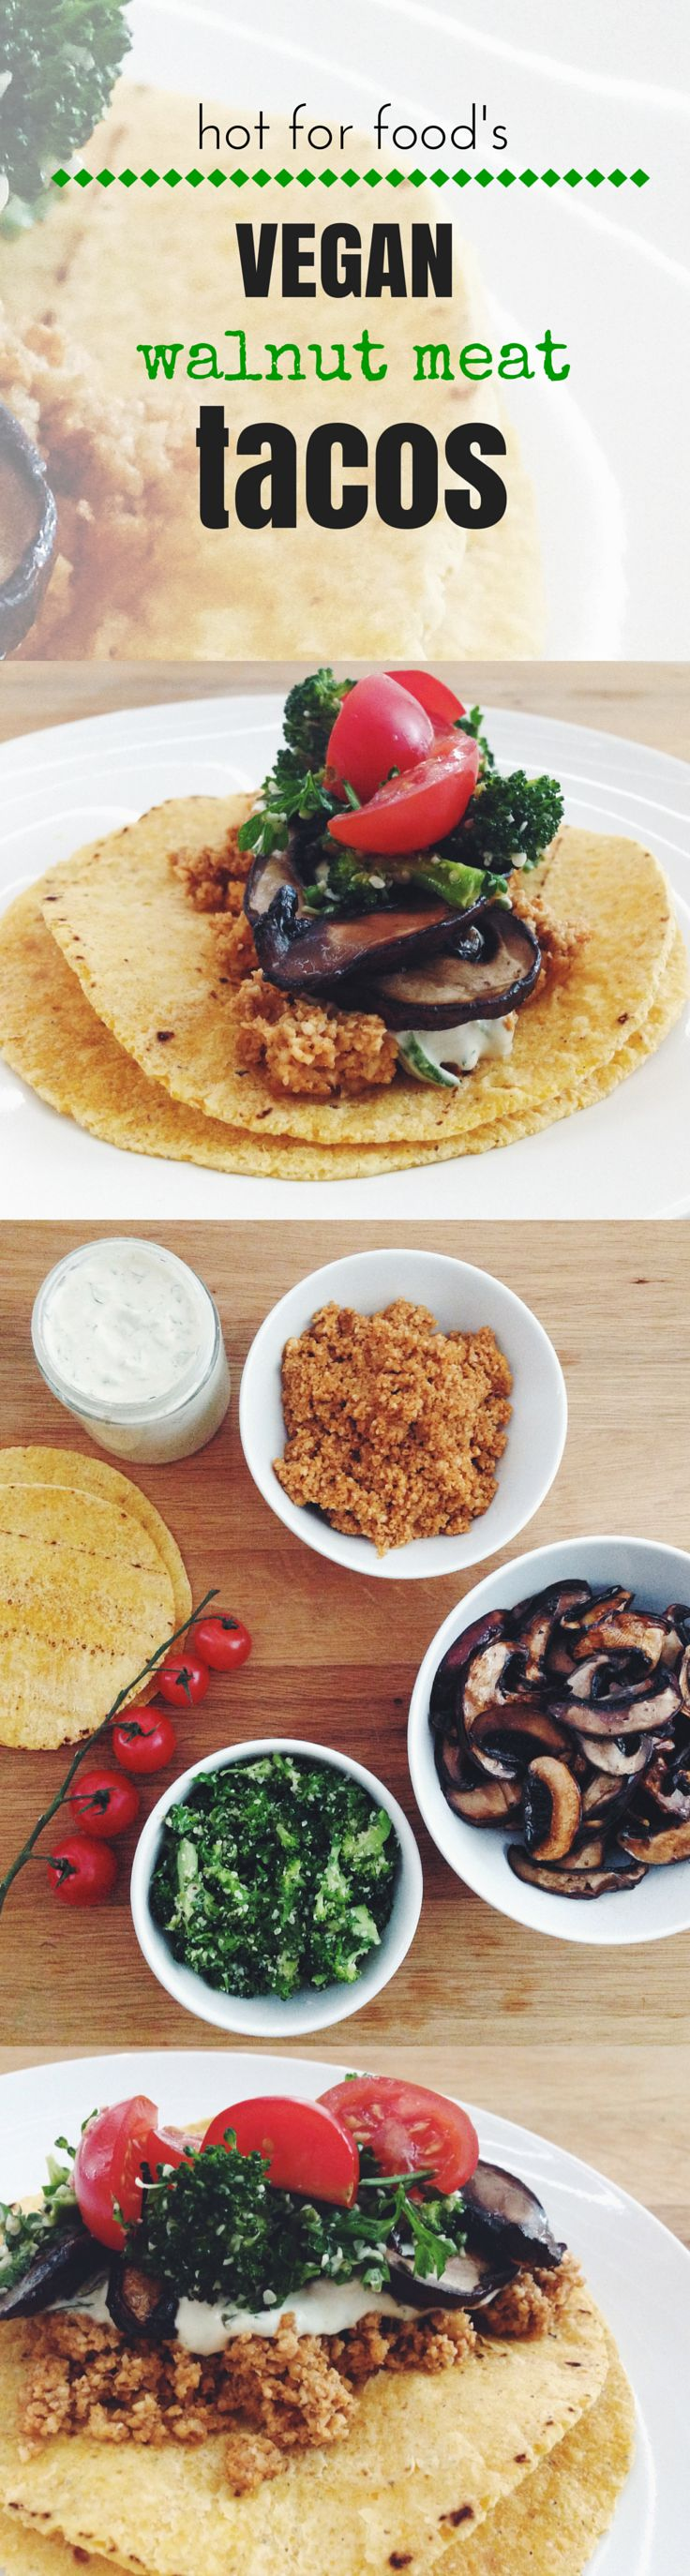 vegan walnut meat tacos | RECIPE on hotforfoodblog.com